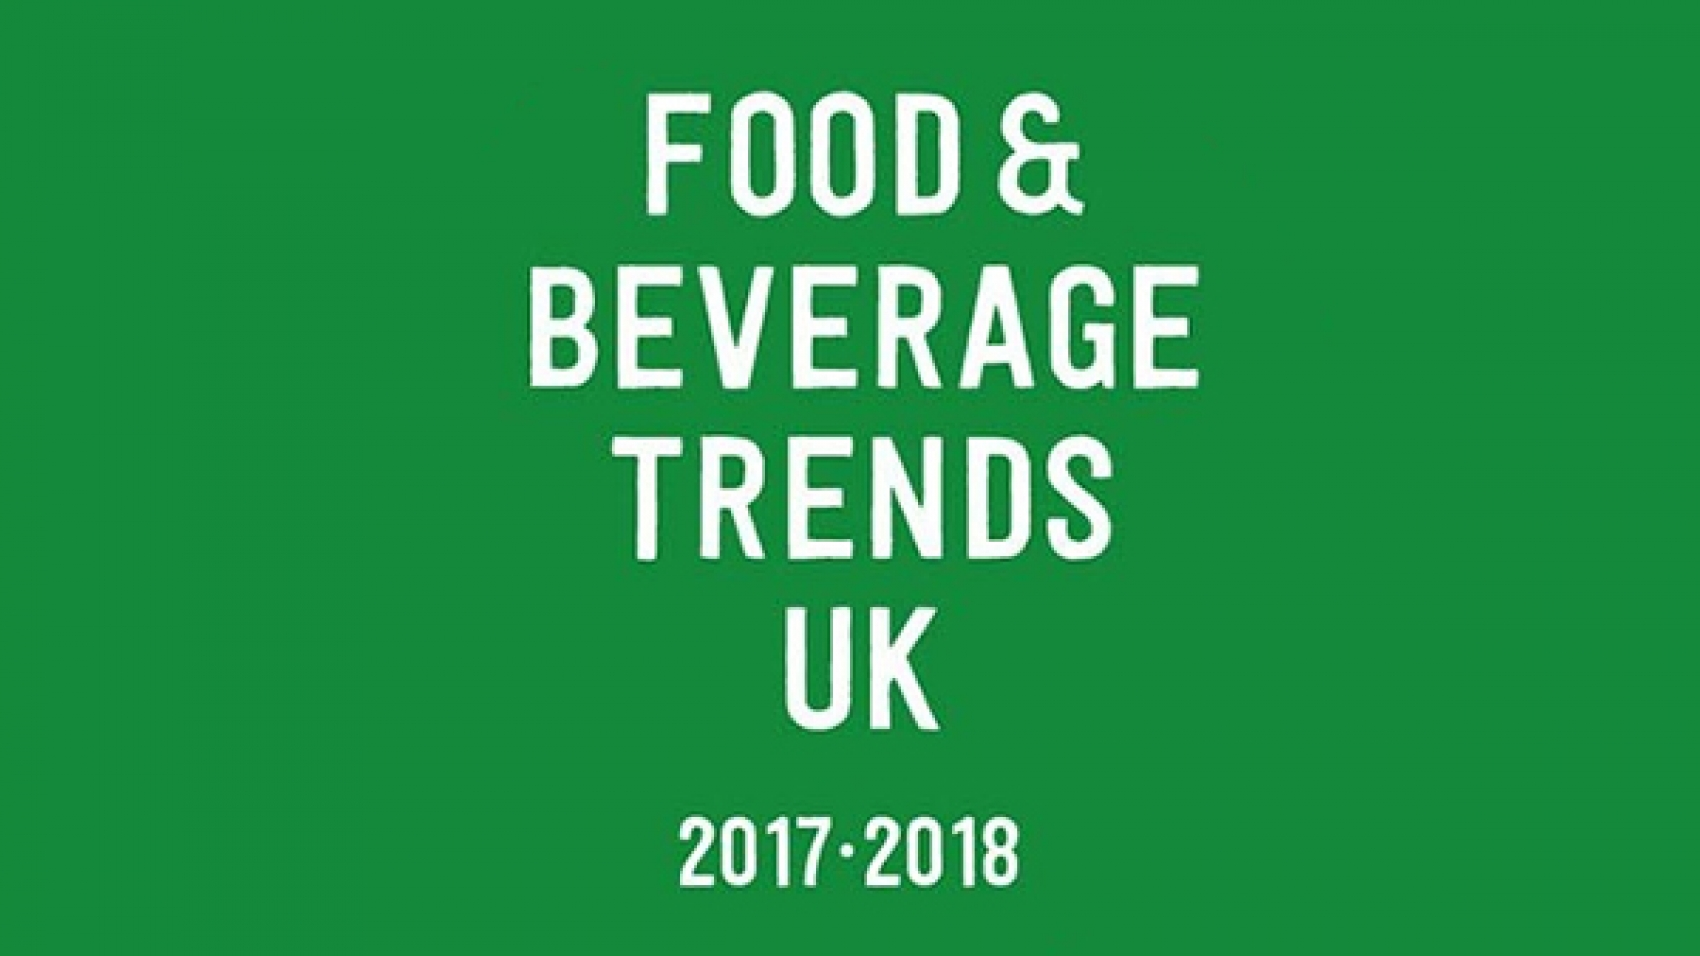 UK-Food-Drink-Trends-for-2017